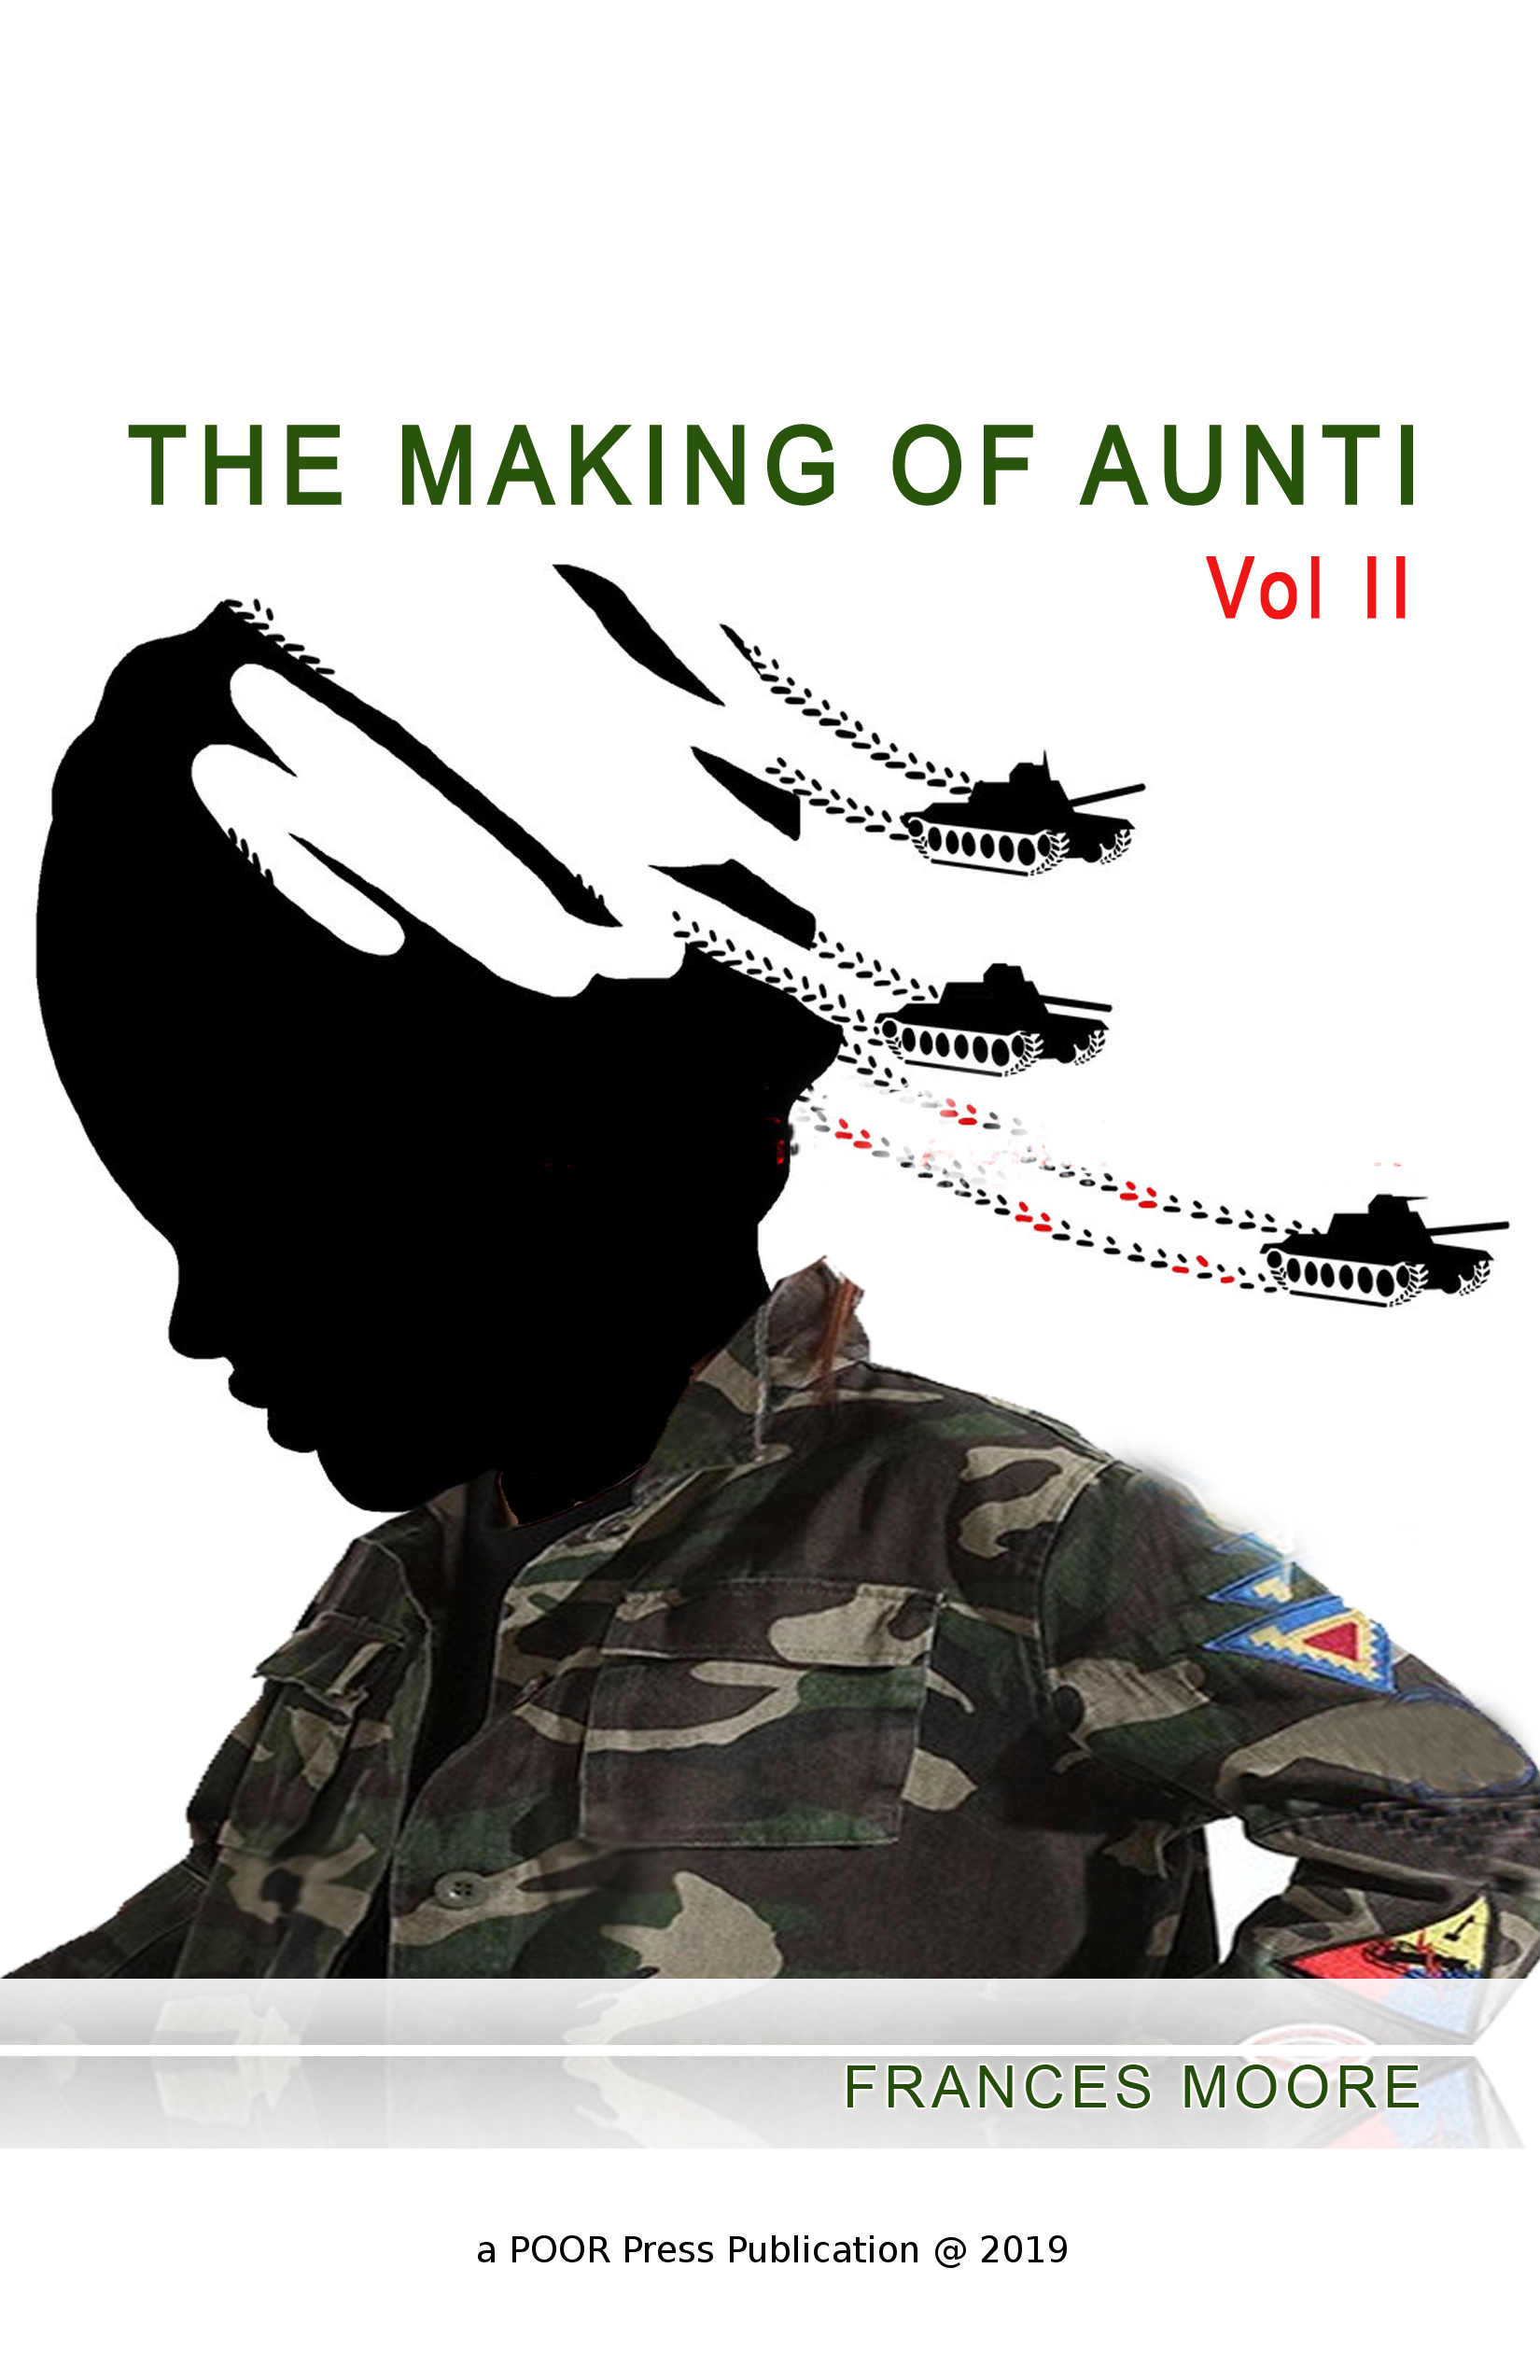 The Making of Aunti II